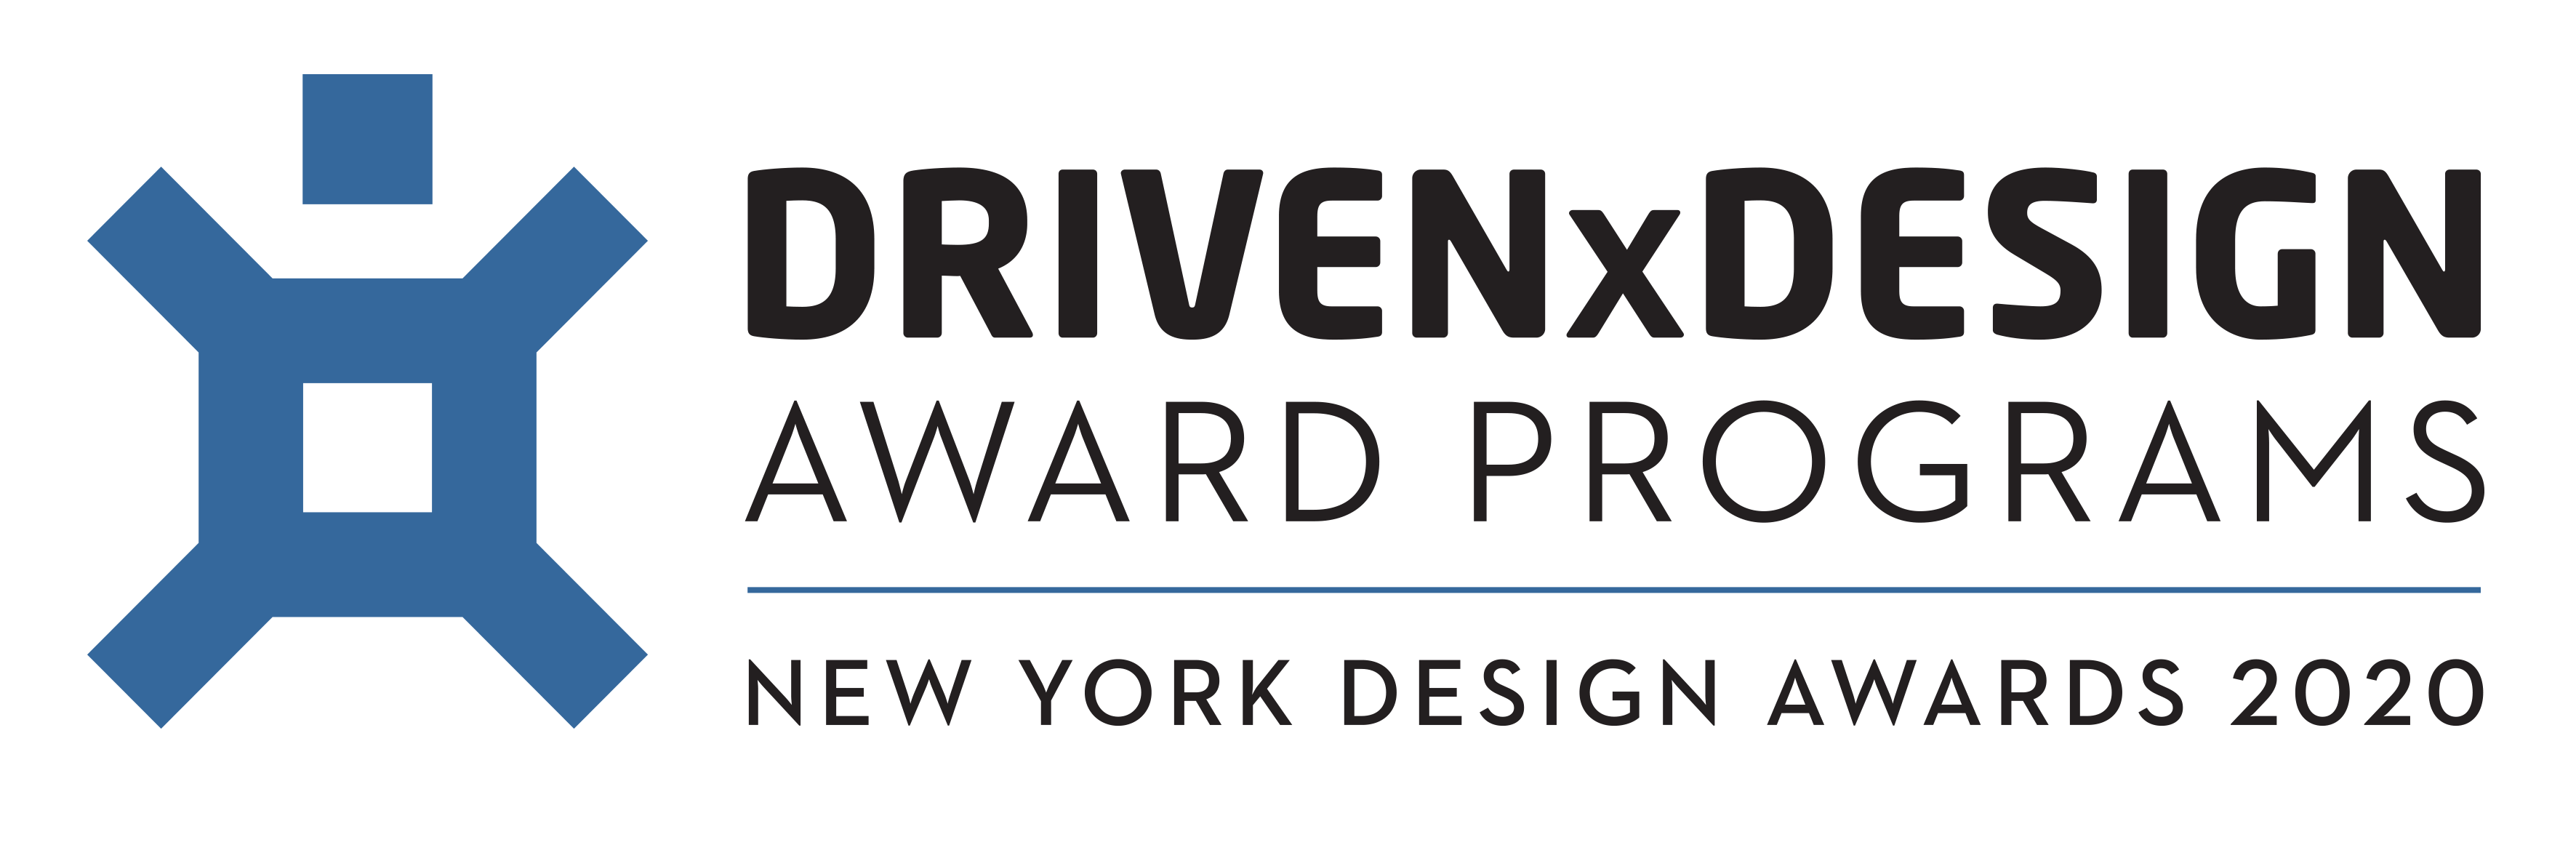 New York Design Awards